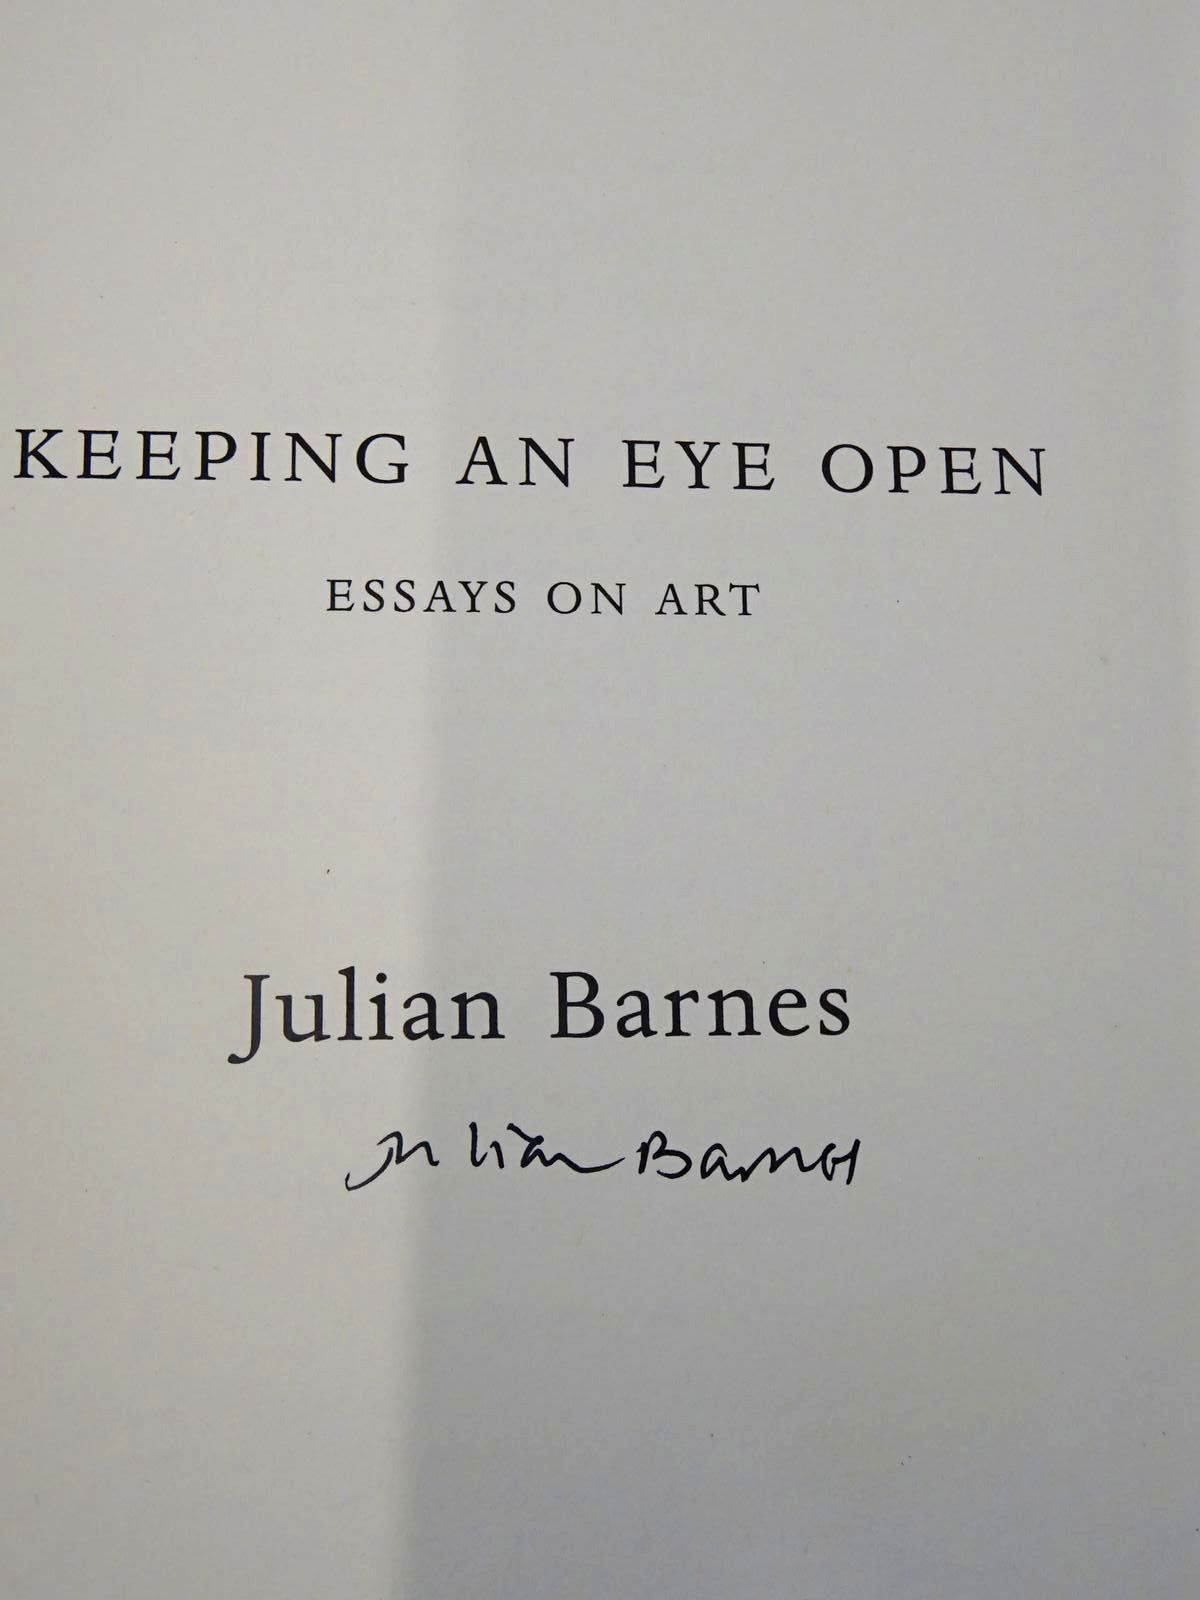 Photo of KEEPING AN EYE OPEN ESSAYS ON ART written by Barnes, Julian published by Jonathan Cape (STOCK CODE: 2127594)  for sale by Stella & Rose's Books